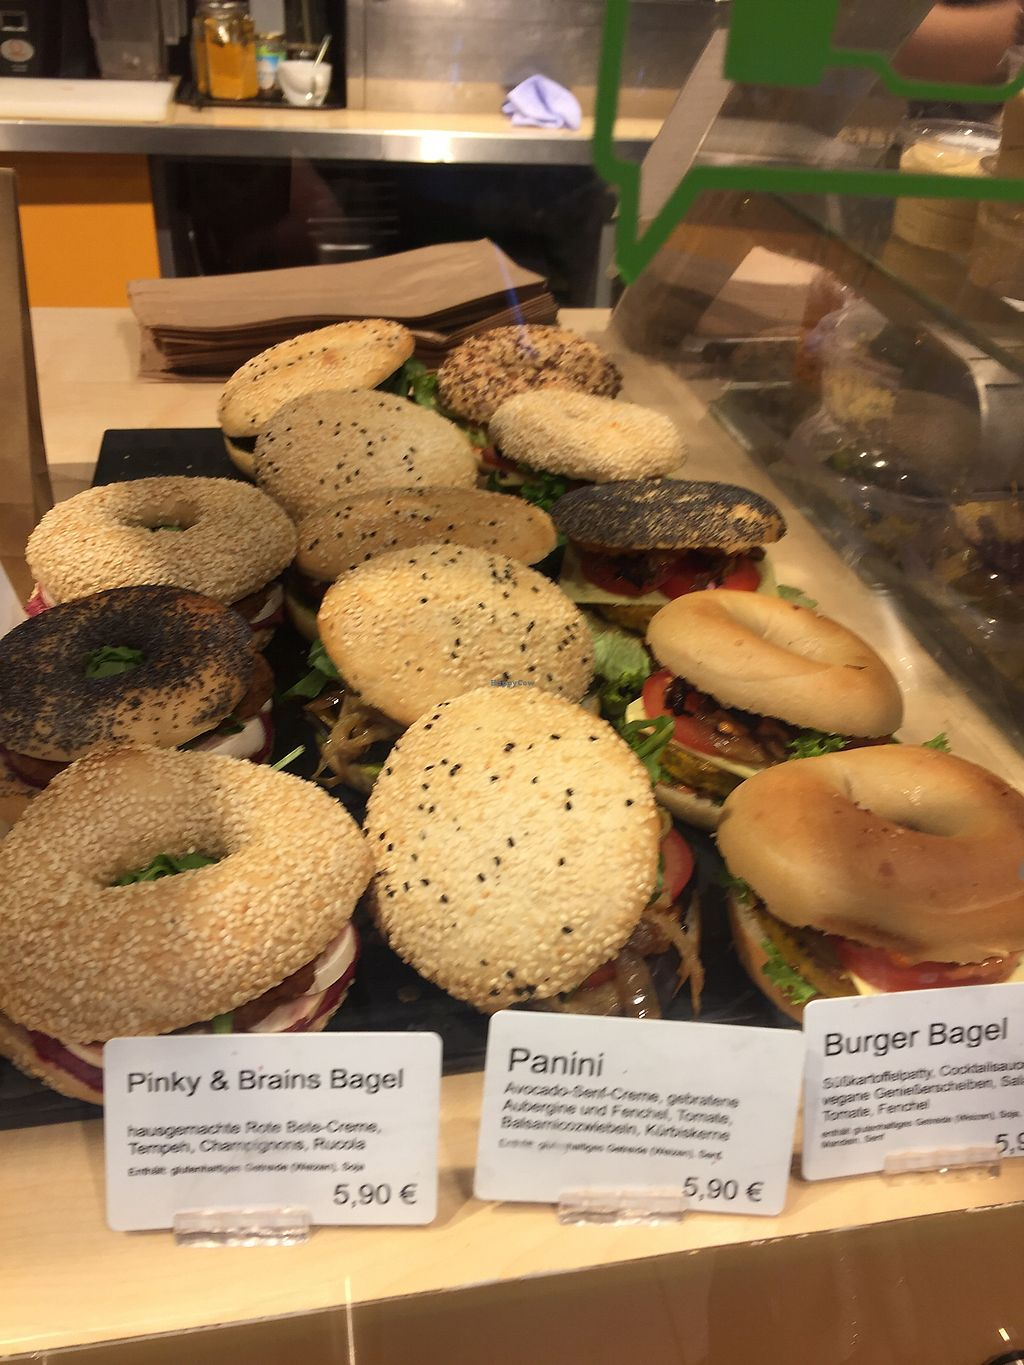 """Photo of Goodies Cafe - Veganz Schivelbeiner Str  by <a href=""""/members/profile/lapev"""">lapev</a> <br/>Great selection of bagels  <br/> November 5, 2017  - <a href='/contact/abuse/image/27316/322198'>Report</a>"""